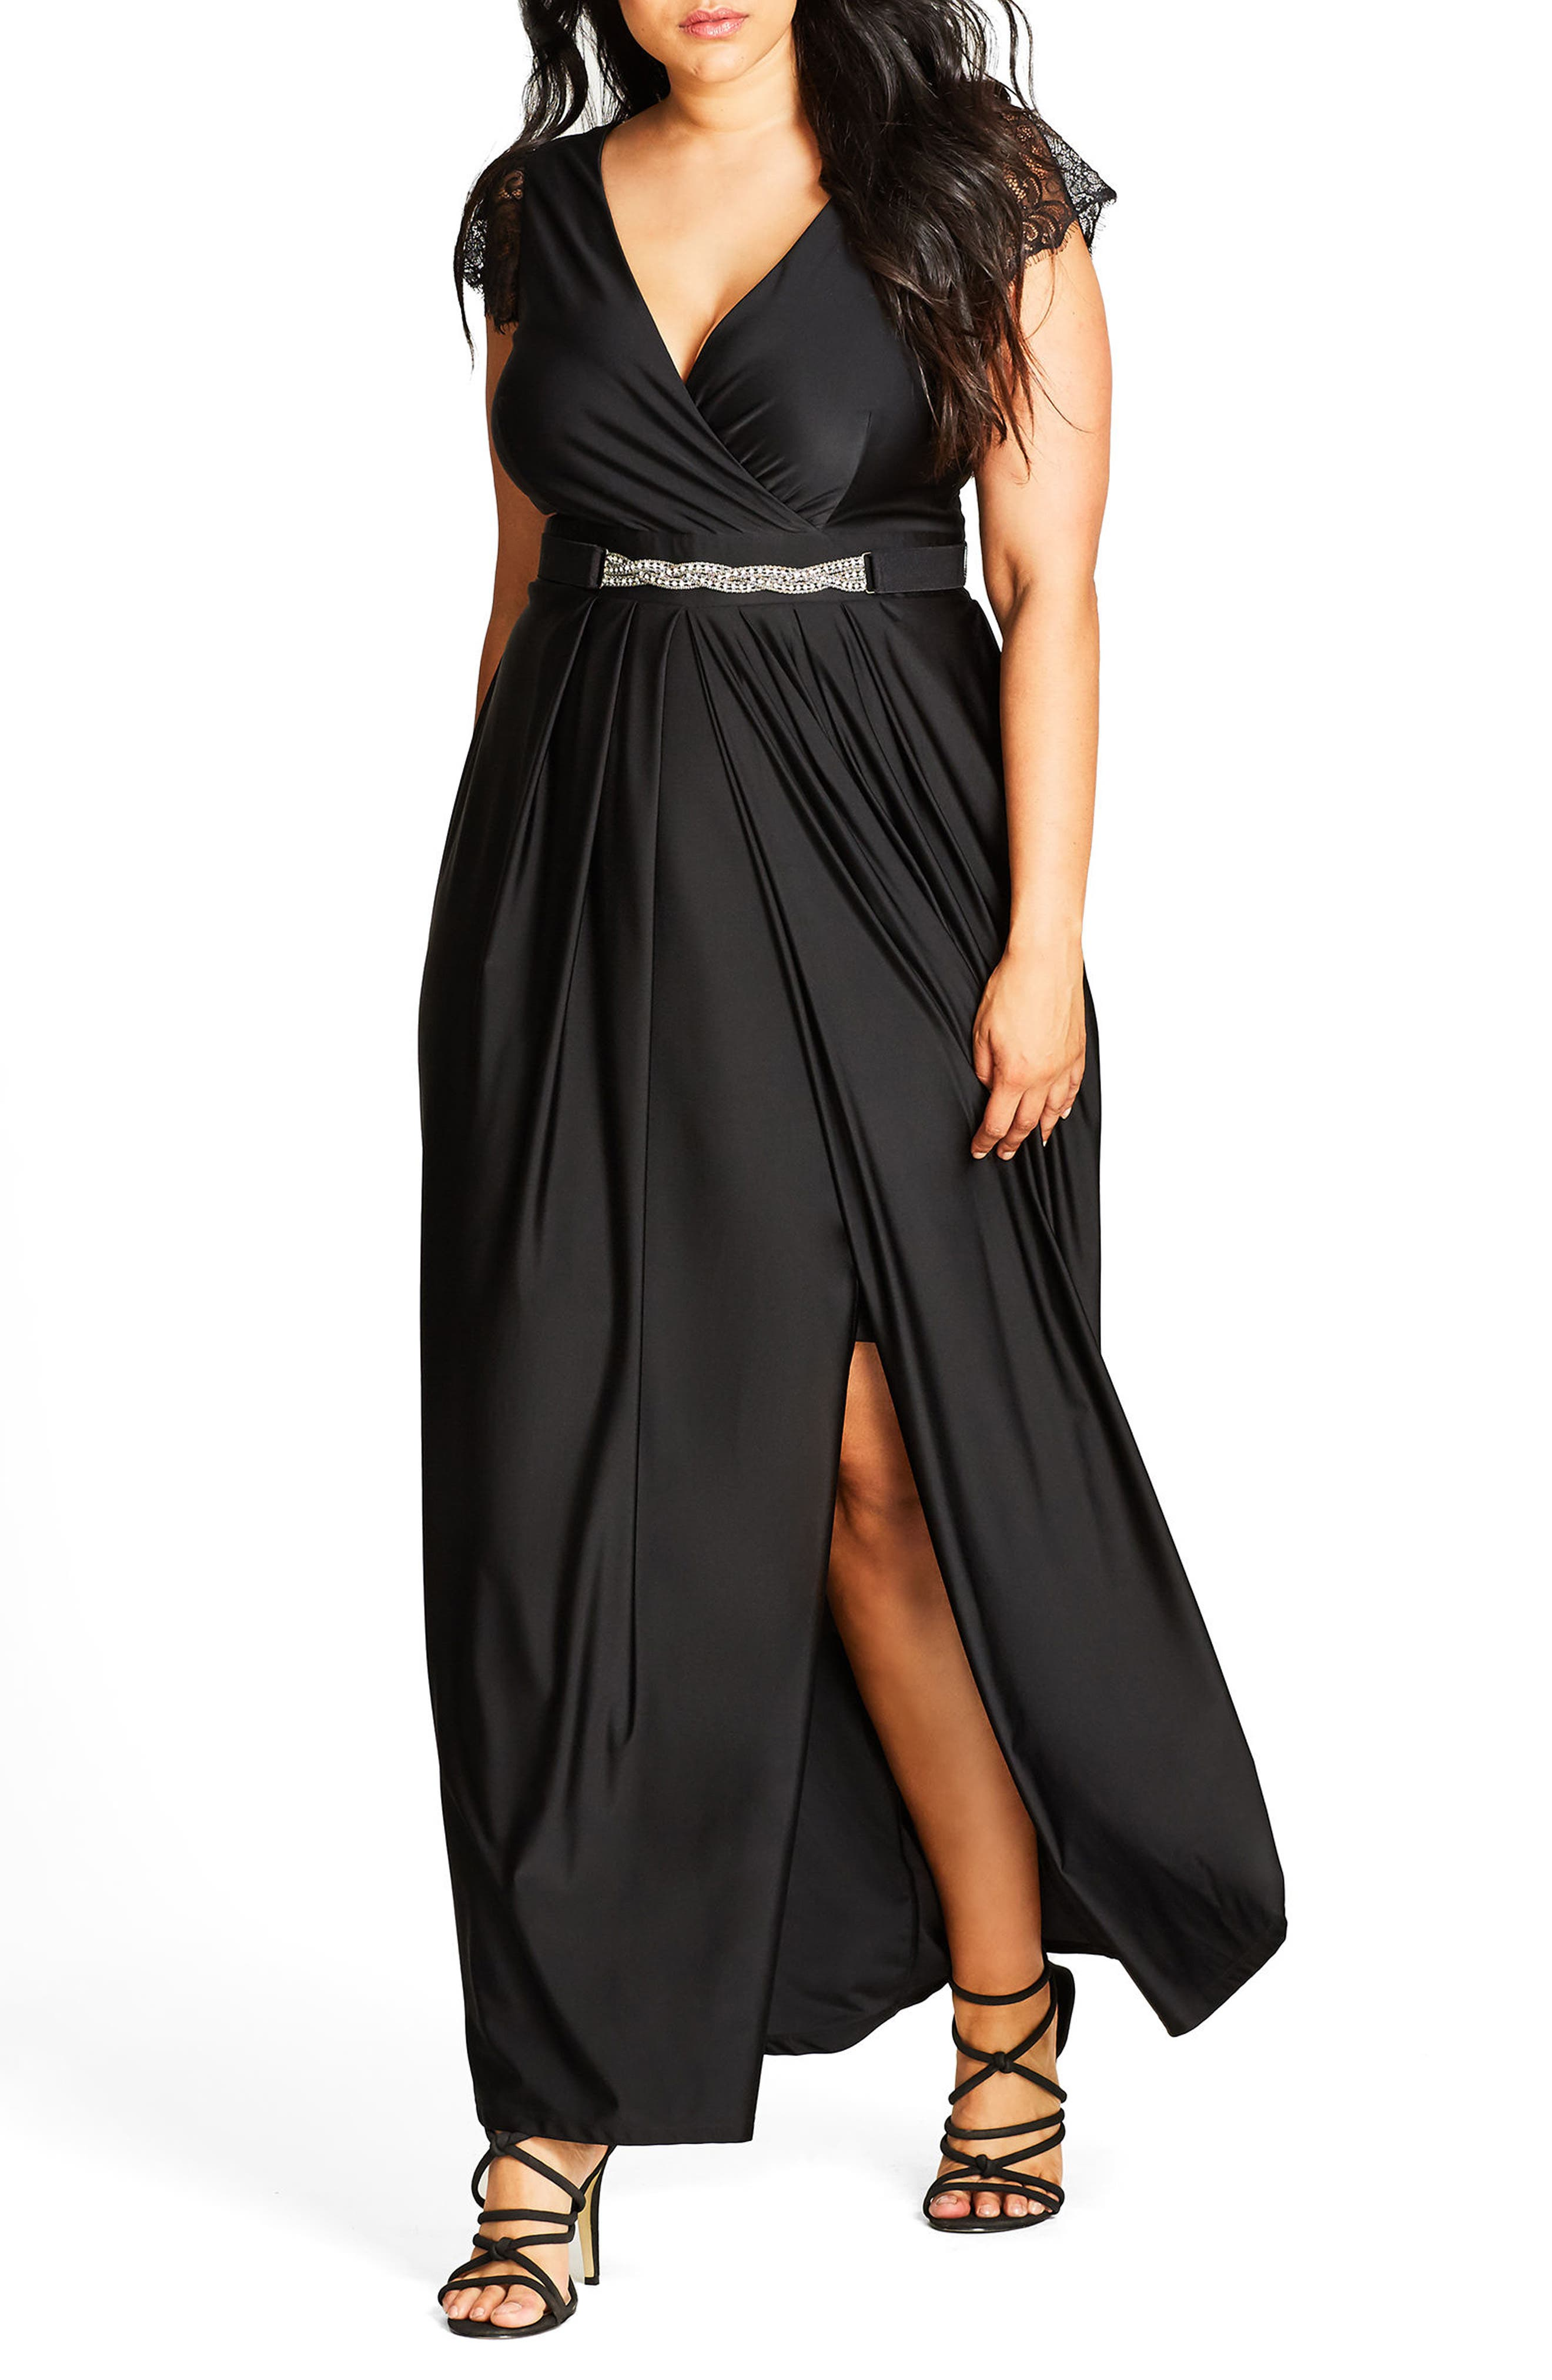 1940s Clothing Plus Size Womens City Chic Flirty Drape Maxi Dress Size Small - Black $149.00 AT vintagedancer.com